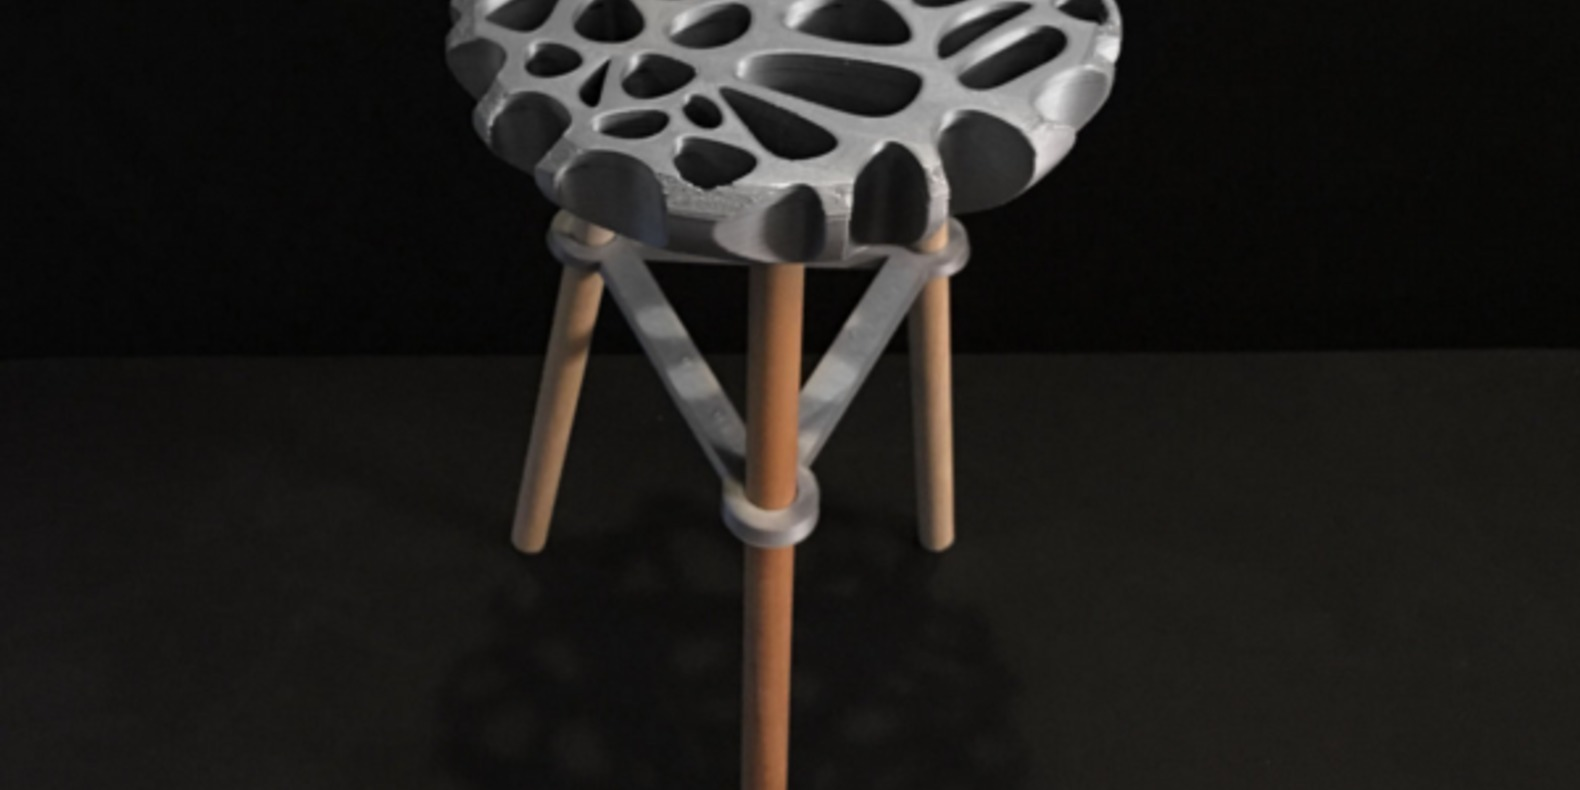 The stool printed in 3D